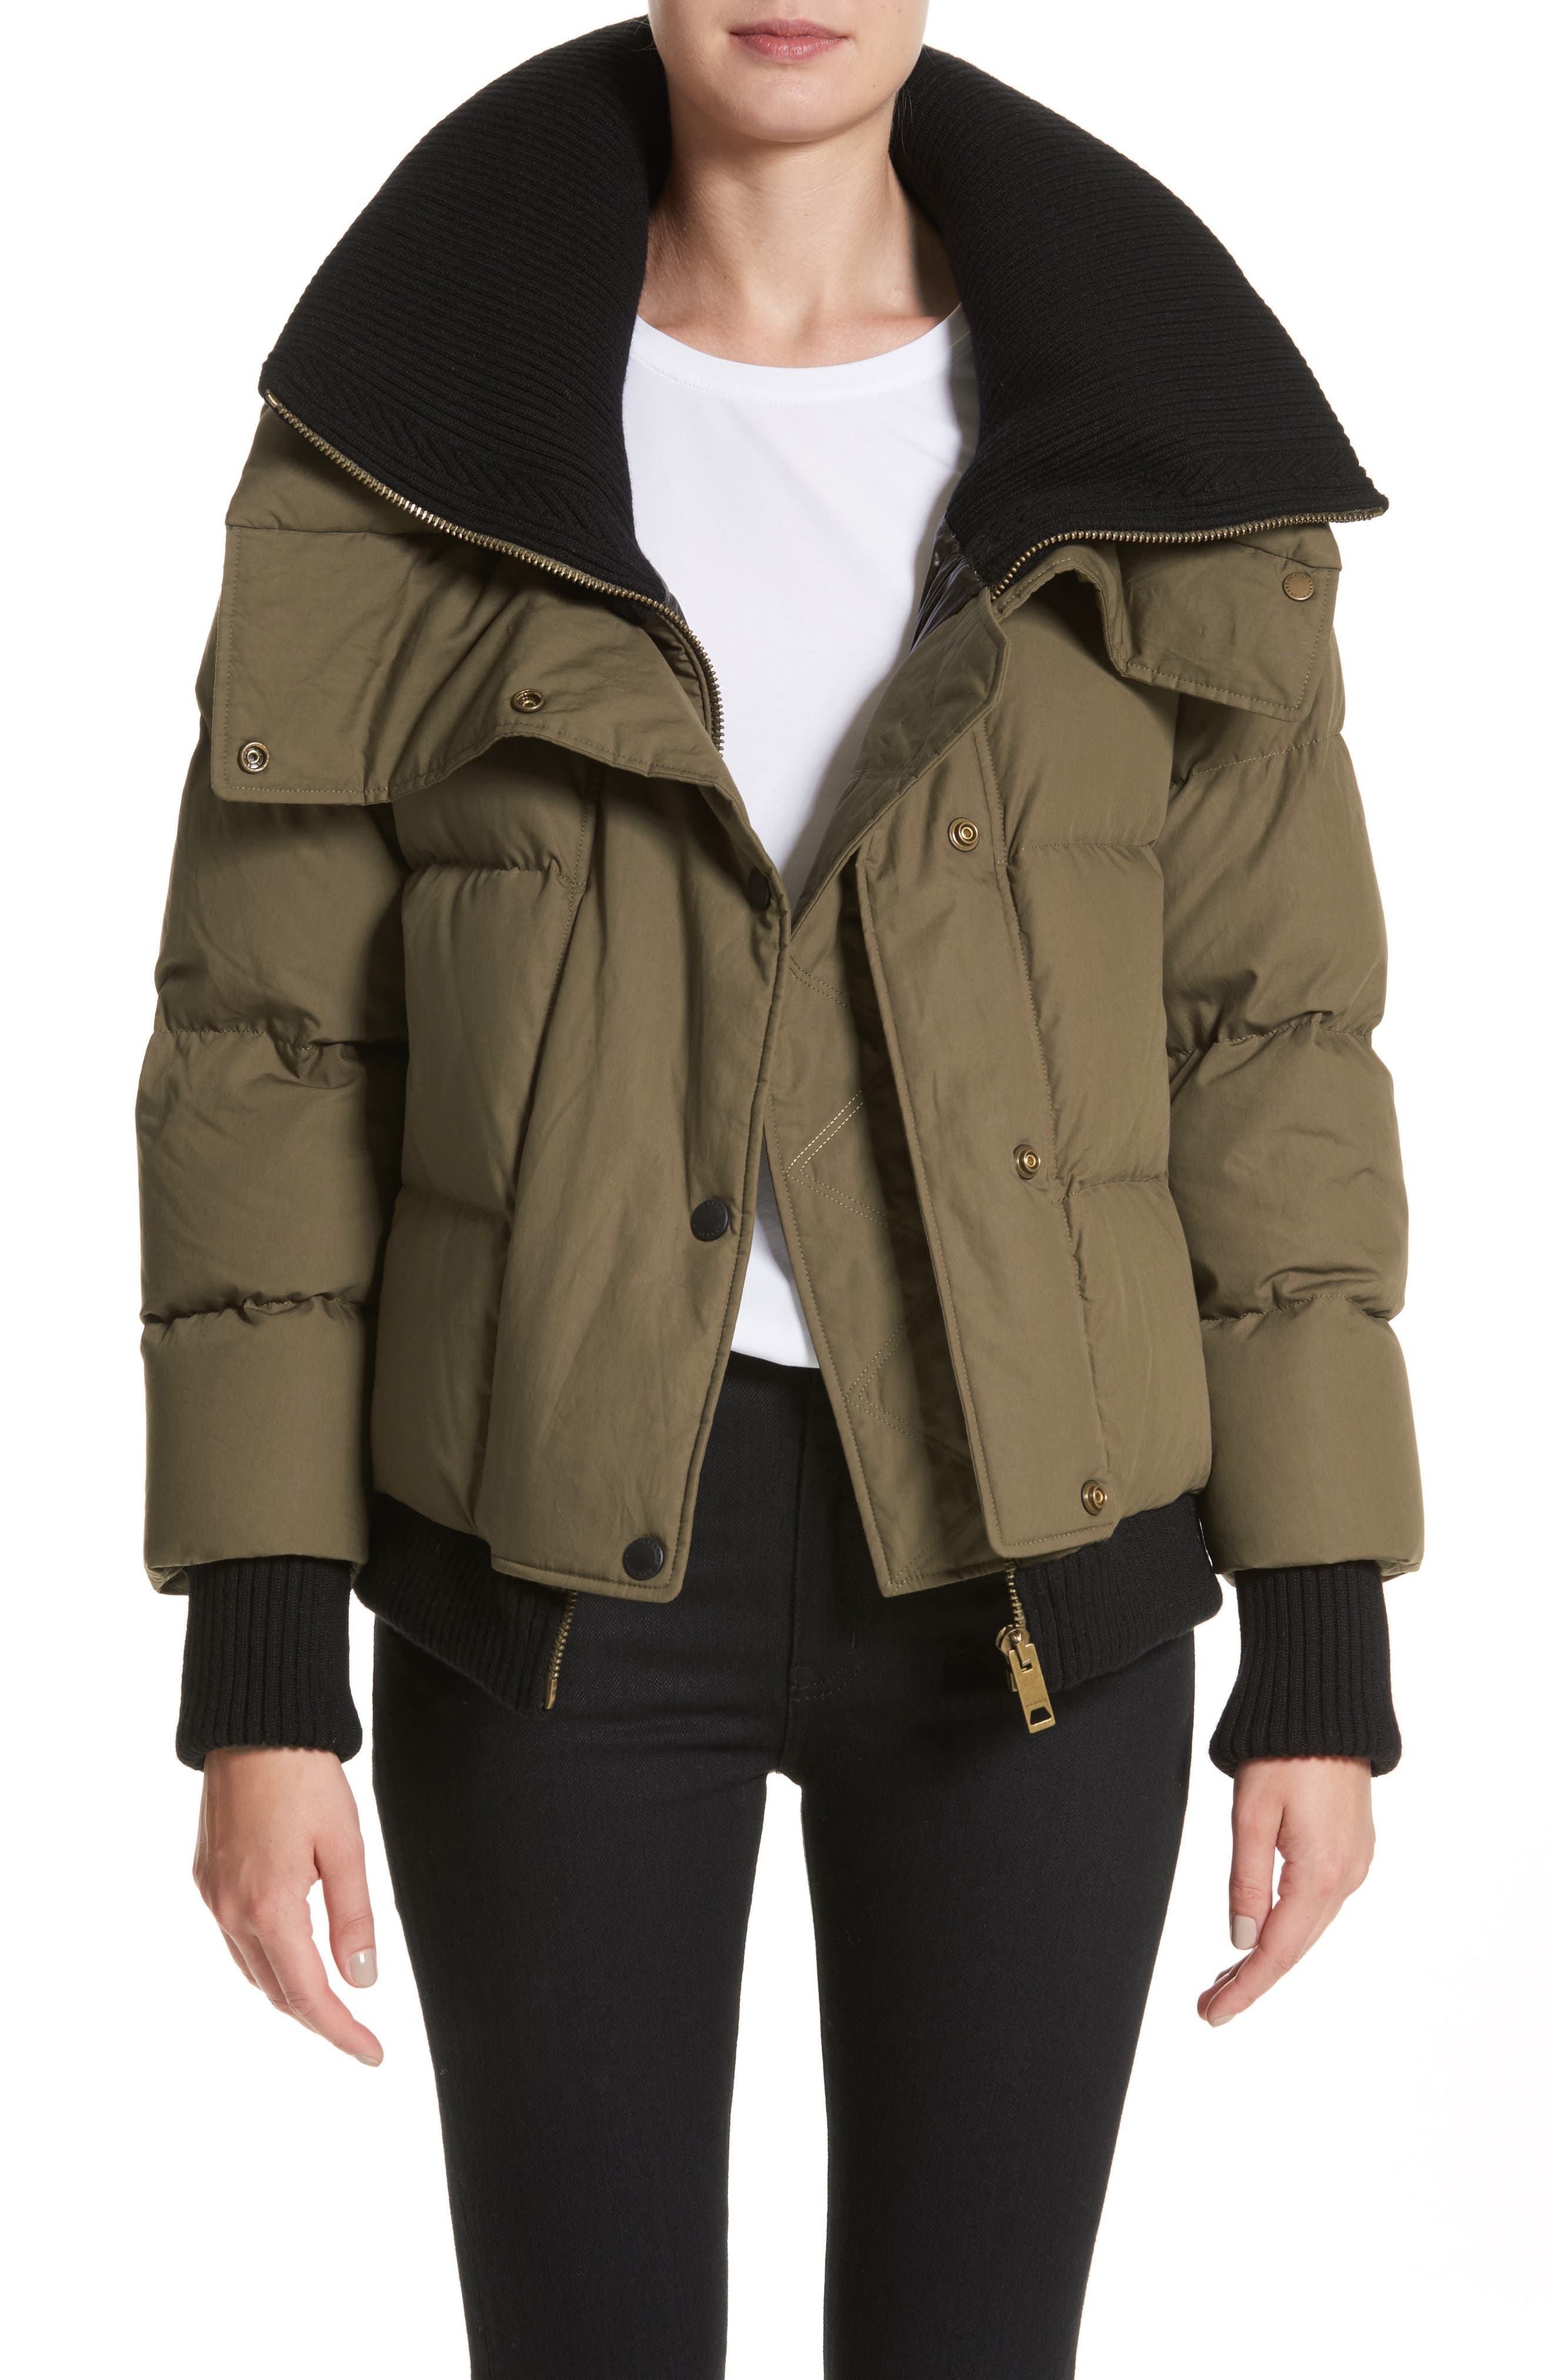 Burberry Greenlawkn Puffer Jacket